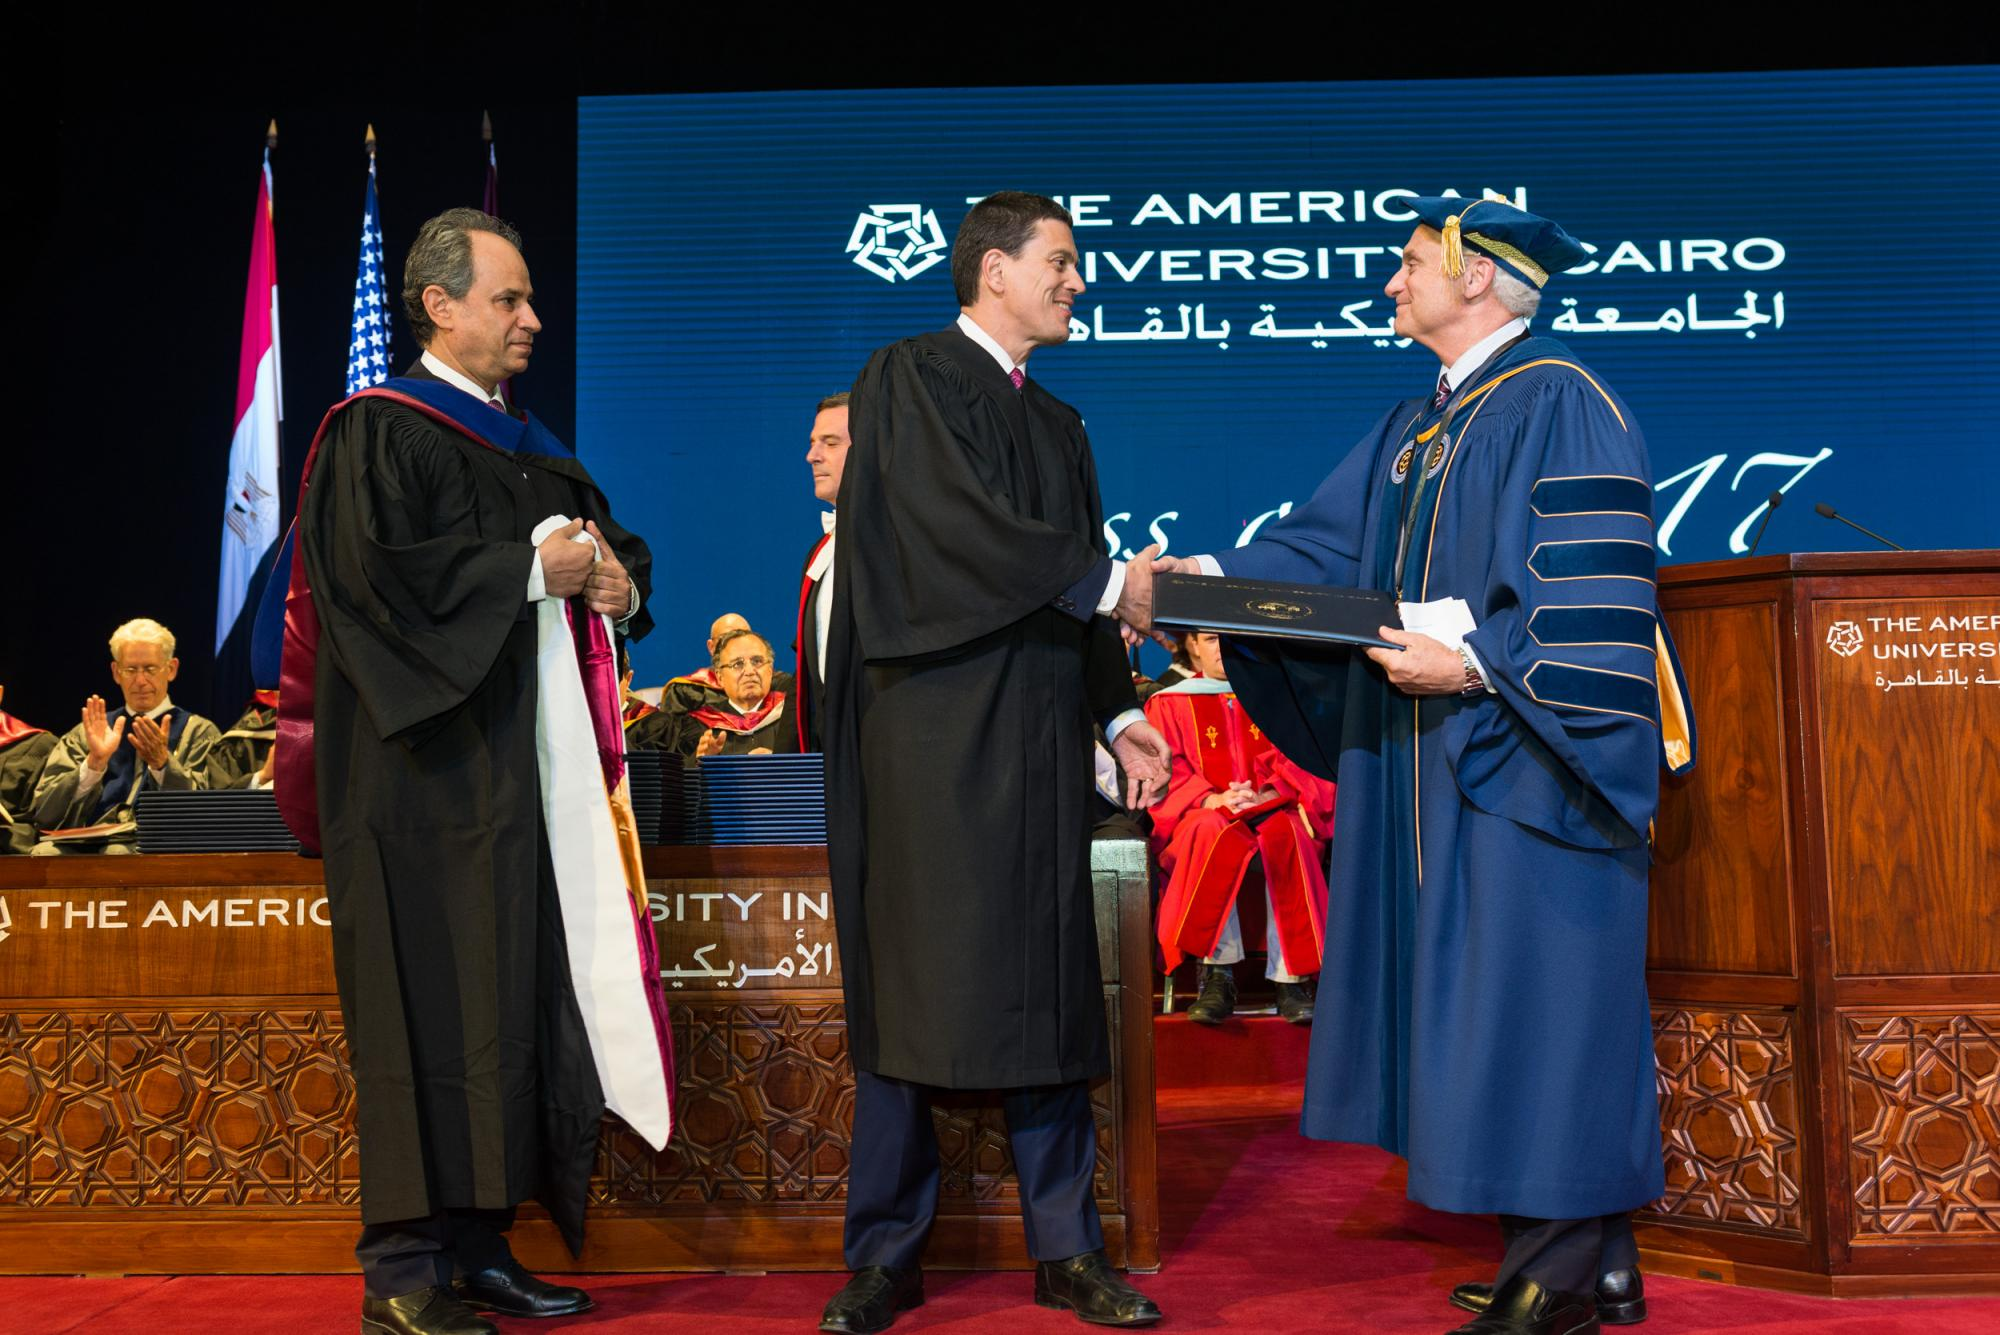 David Miliband receives honorary degree at the 2017 graduate commencement.